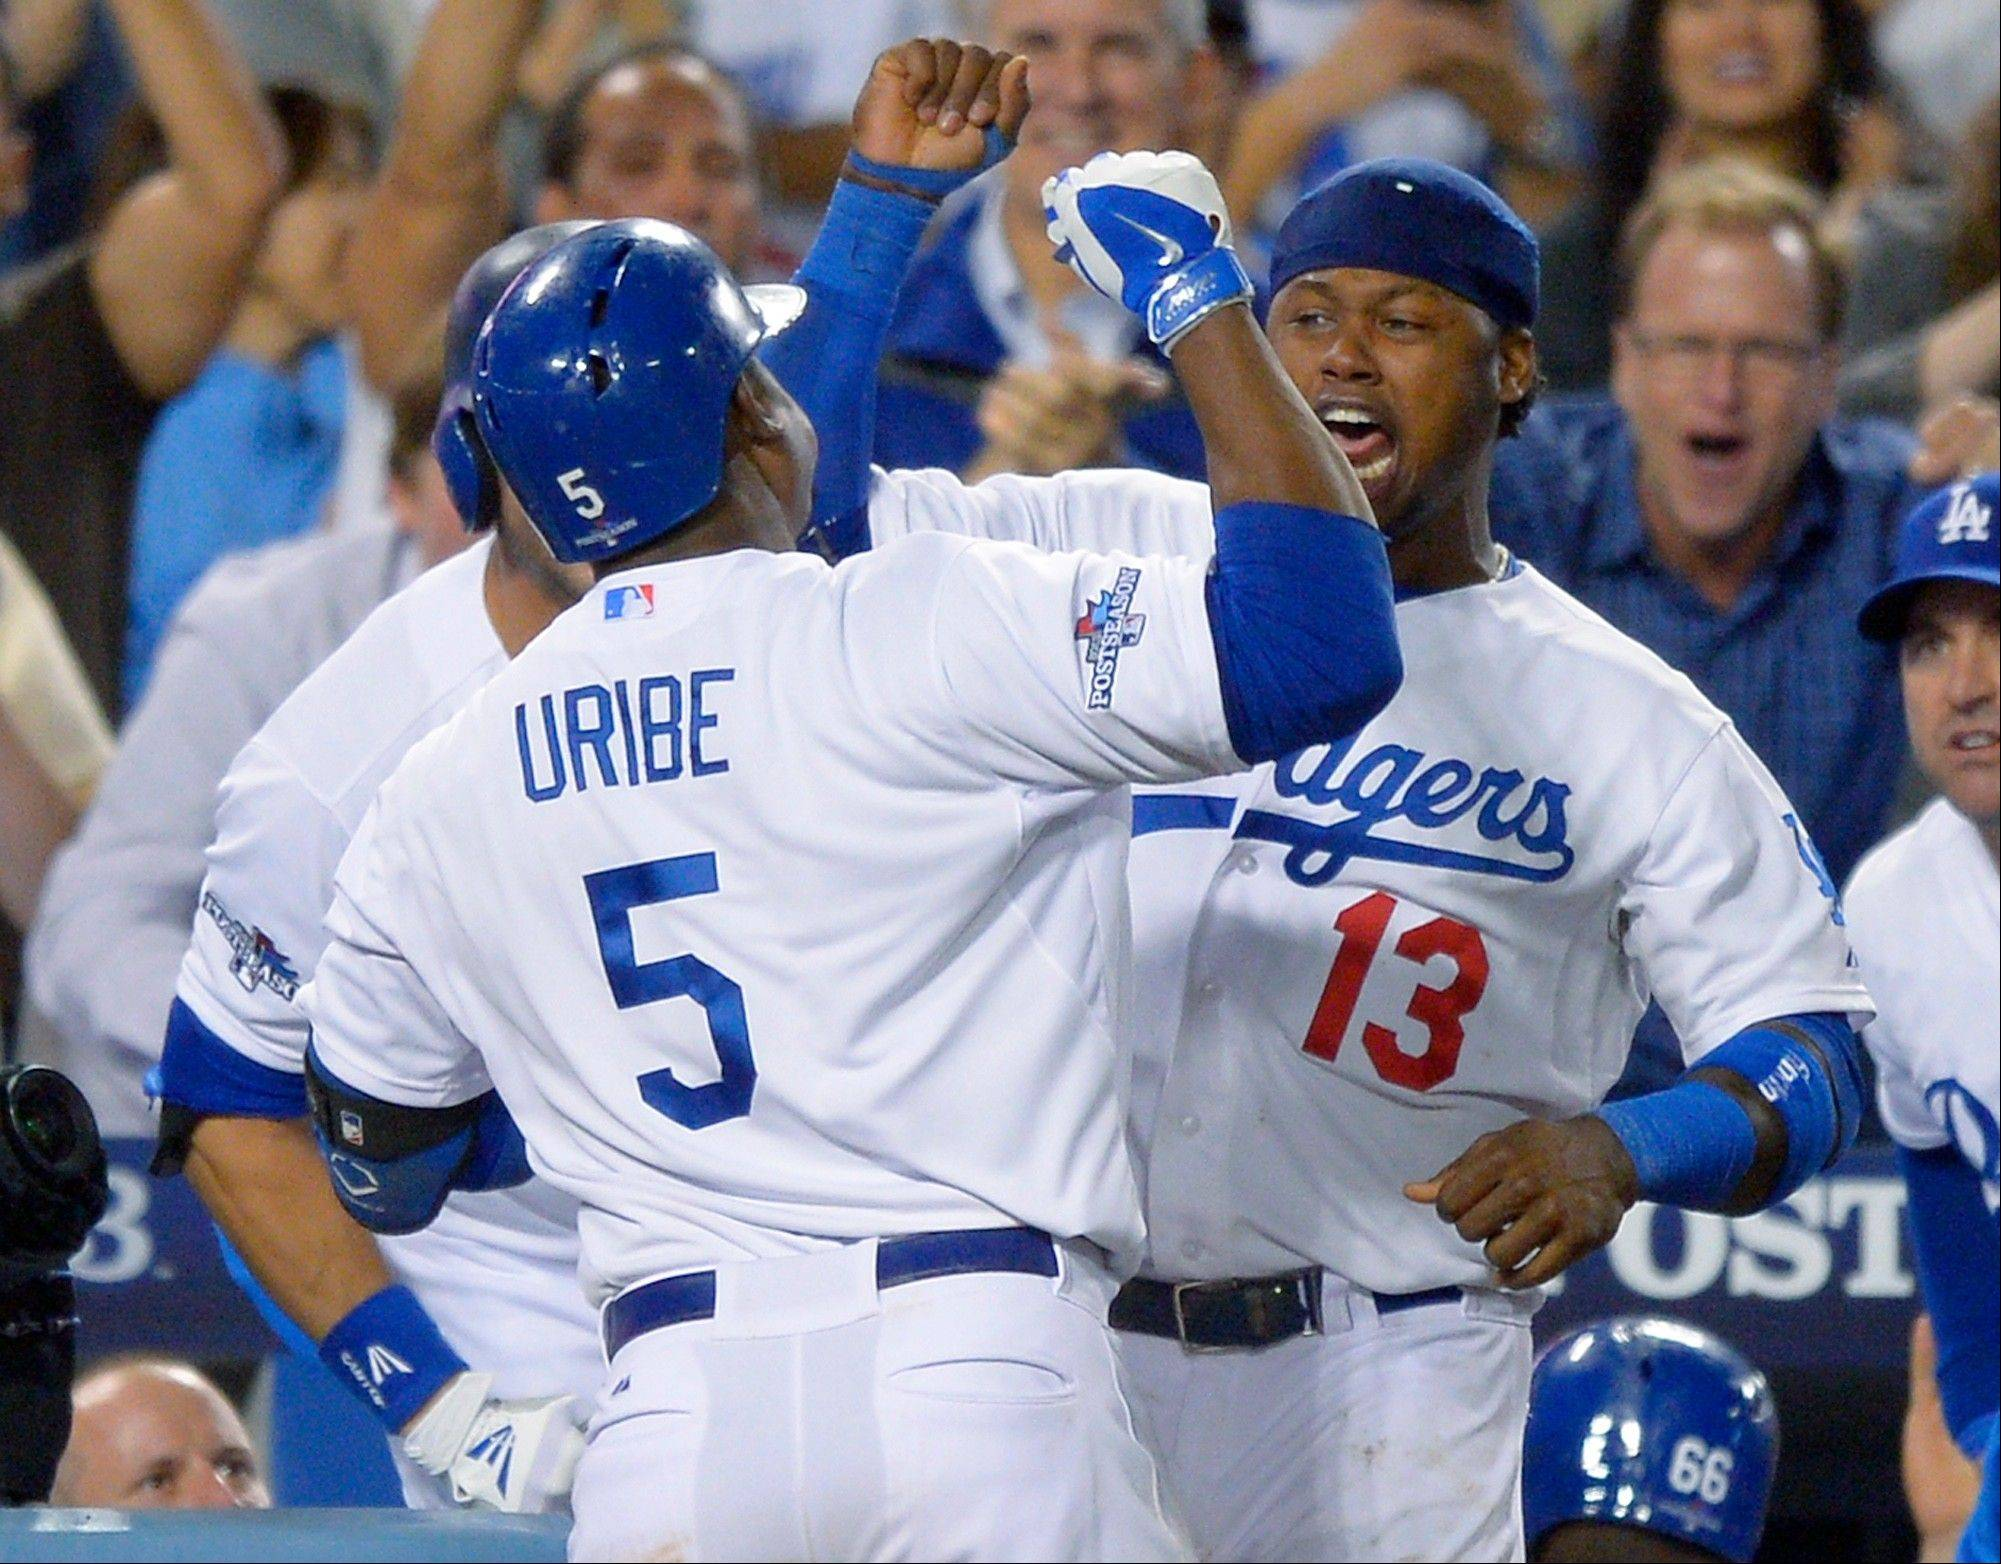 The Dodgers� Juan Uribe (5) celebrates with Hanley Ramirez (13) after Uribe hit a two-run home run in the eighth inning Monday in Game 4 in the National League Division Series against the Braves. The Dodgers won 4-3 at home.